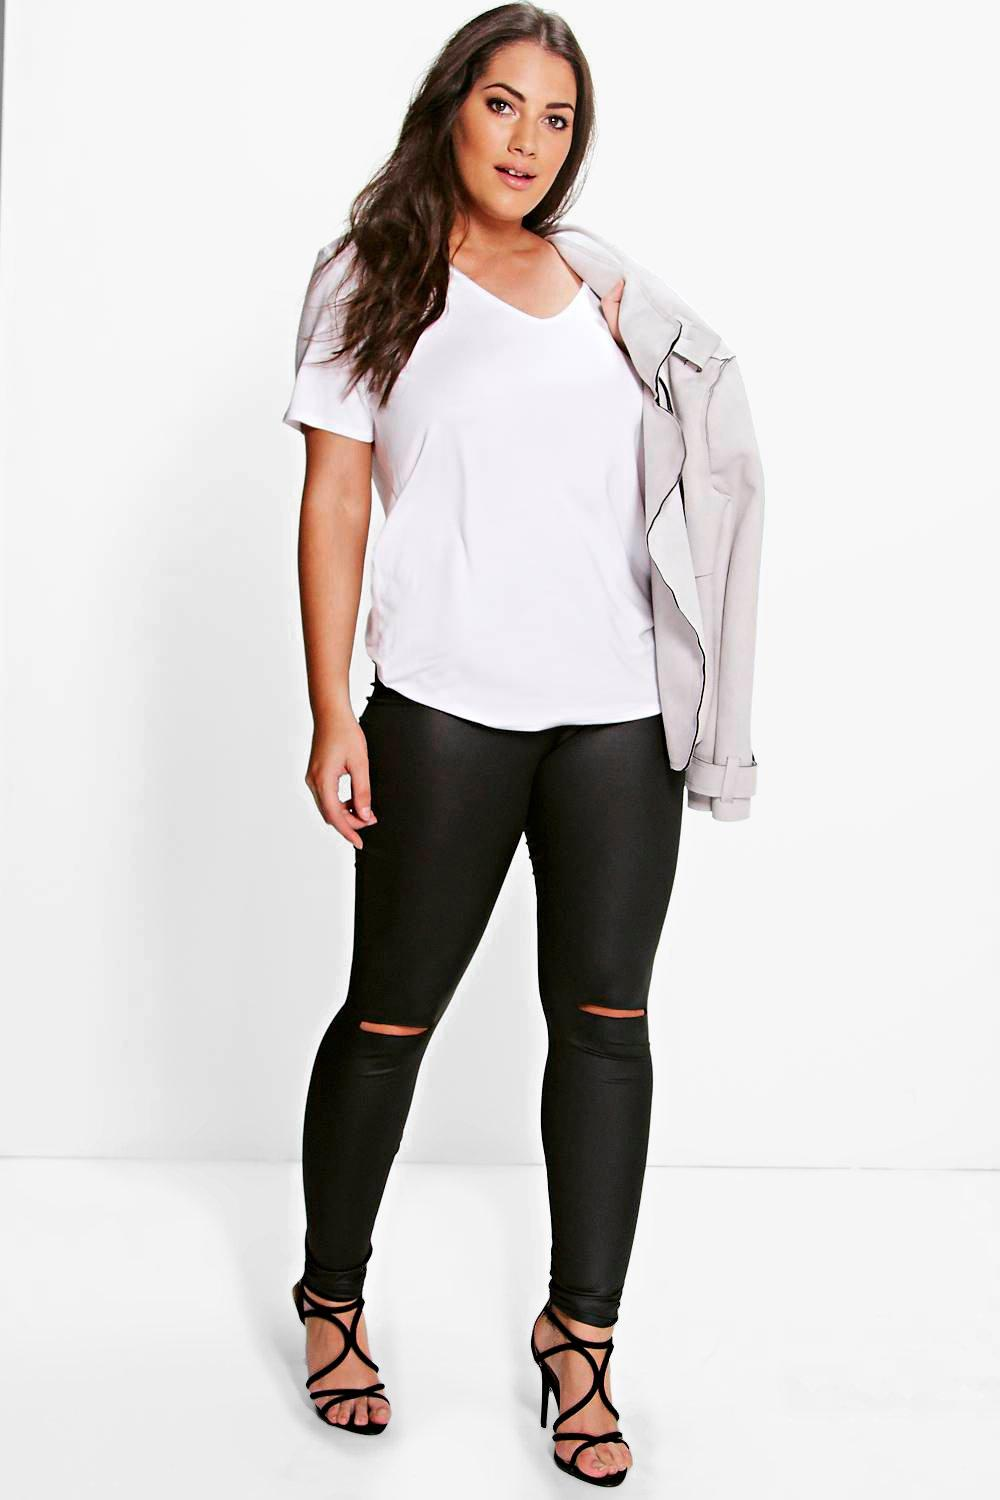 Plus Hazel PU Legging With Rip Knee